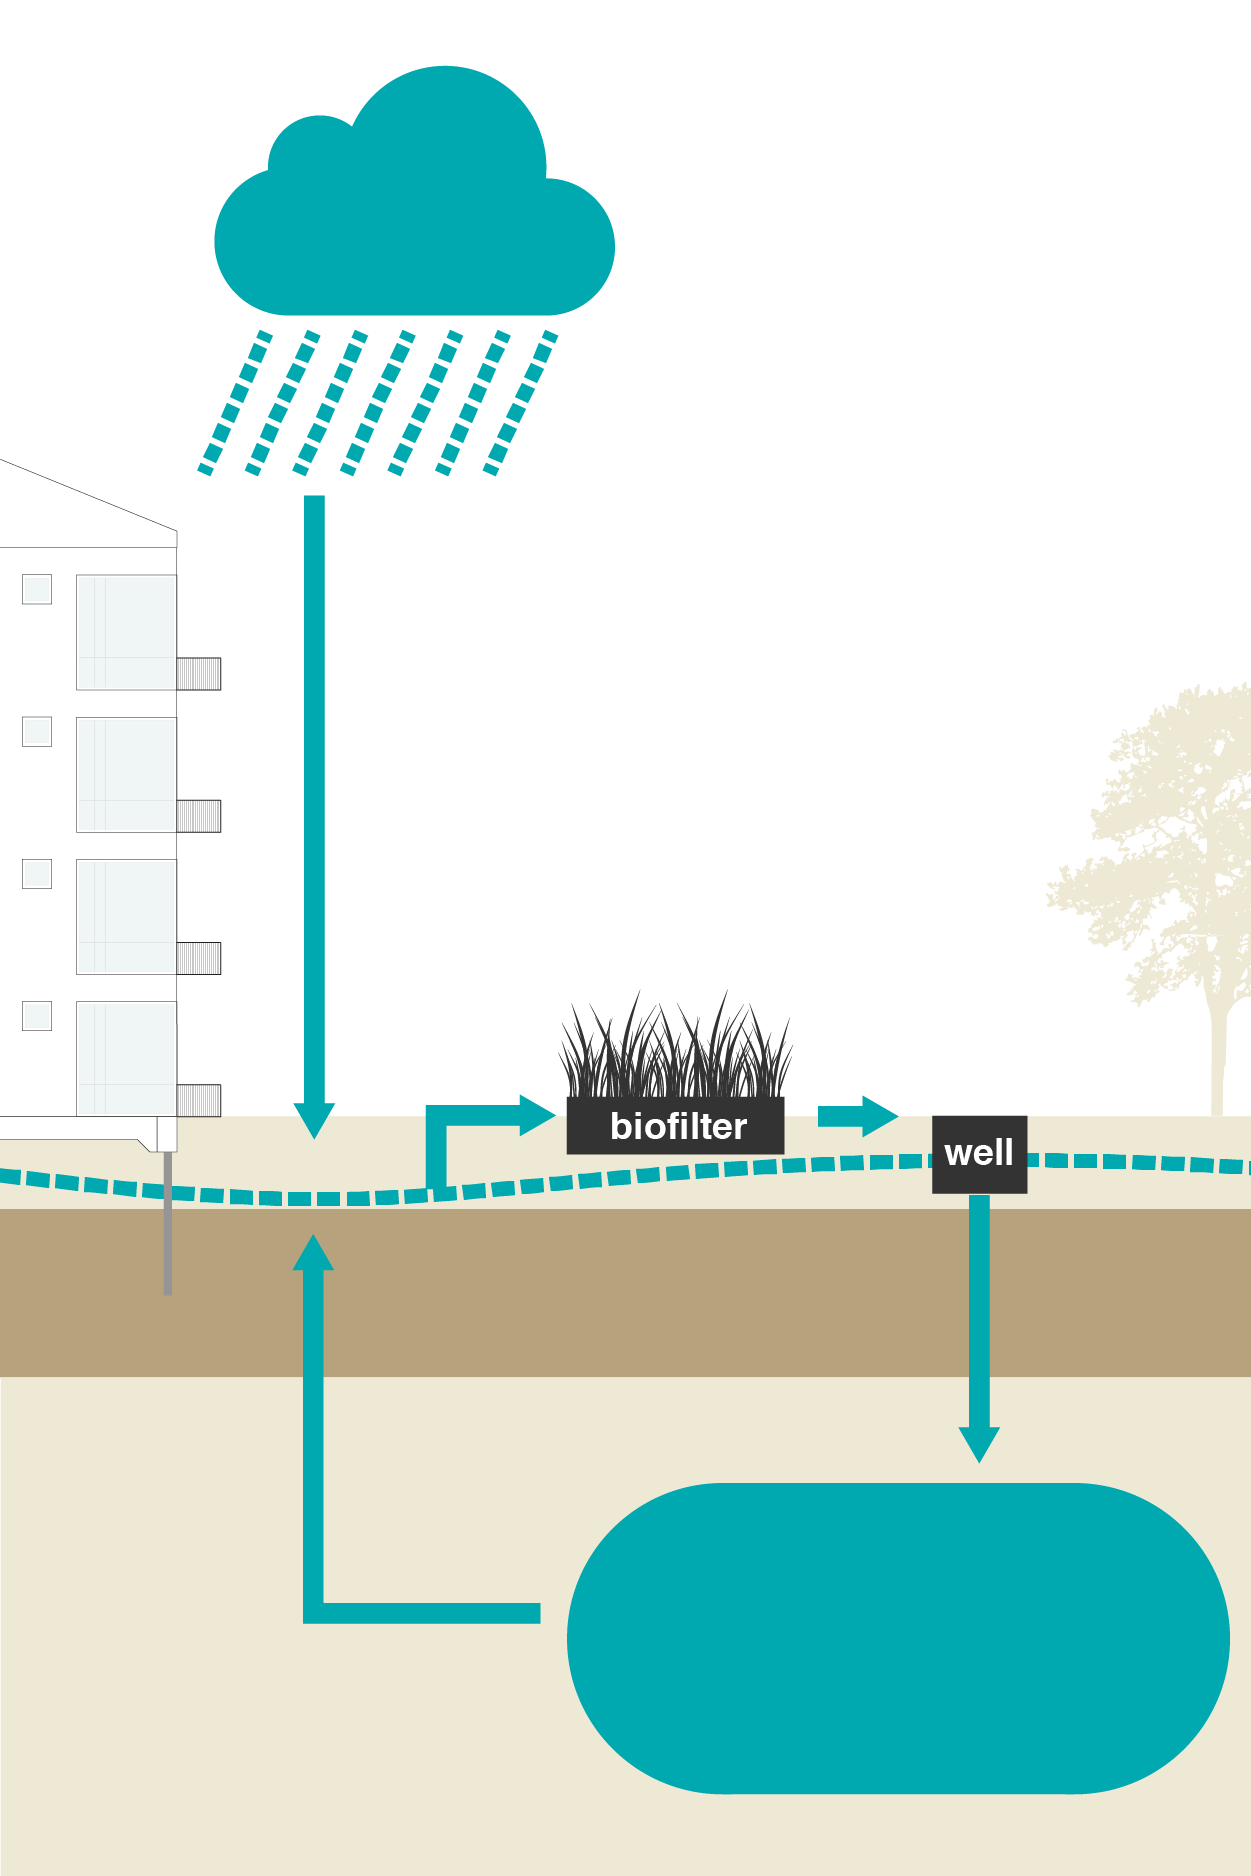 Stable groundwater levels - System components: Biofilter and Installations.With Bluebloqs, active groundwater level management is possible, so that flooding or shortage can be prevented. During the wet season, the excess water is infiltrated to the subsurface and stored. In the dry season, the stored water is used to supplement the groundwater shortage. In this case, land subsidence can be delayed.Bluebloqs can be applied at dense paved surfaces where little surface water is available. It can be implemented at the street or neighbourhood level, with a replacement of sewage or in new area development projects.